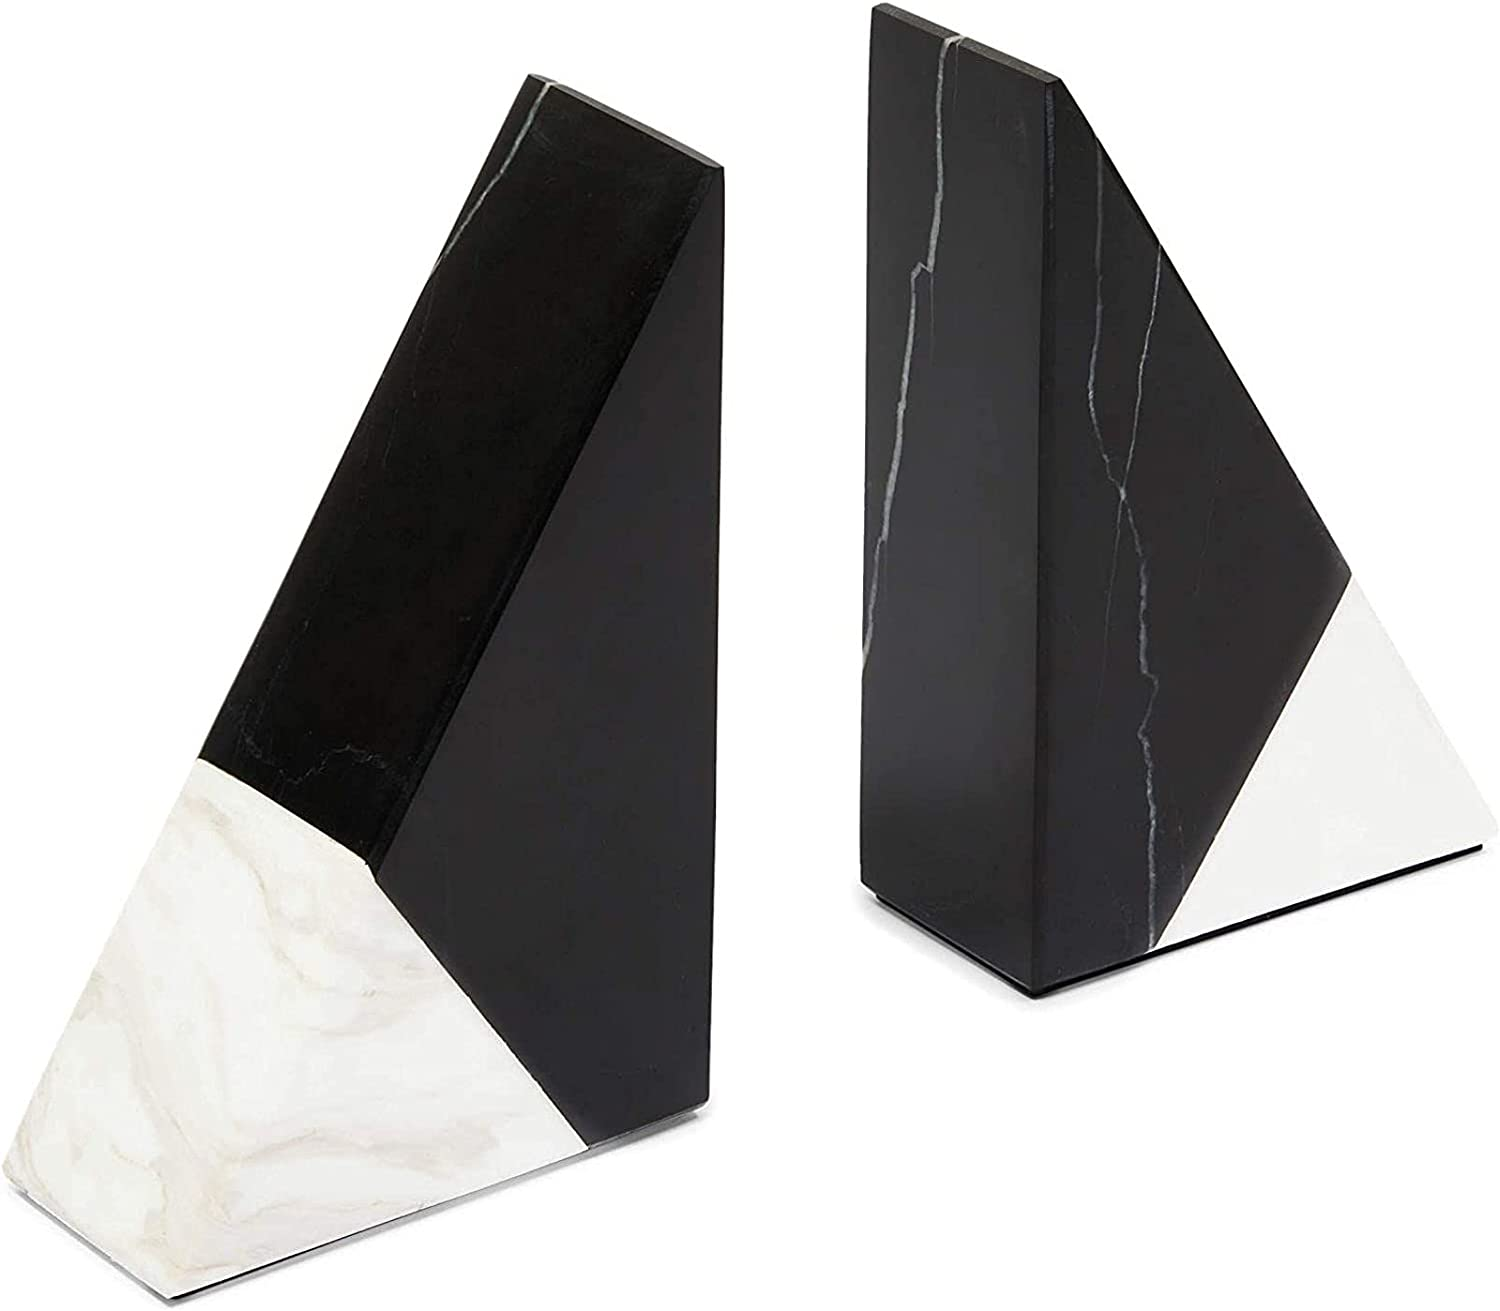 Black Marble Fashion Decorative Bookends for Shelves in 2 3.9 Super popular specialty store x 6.3